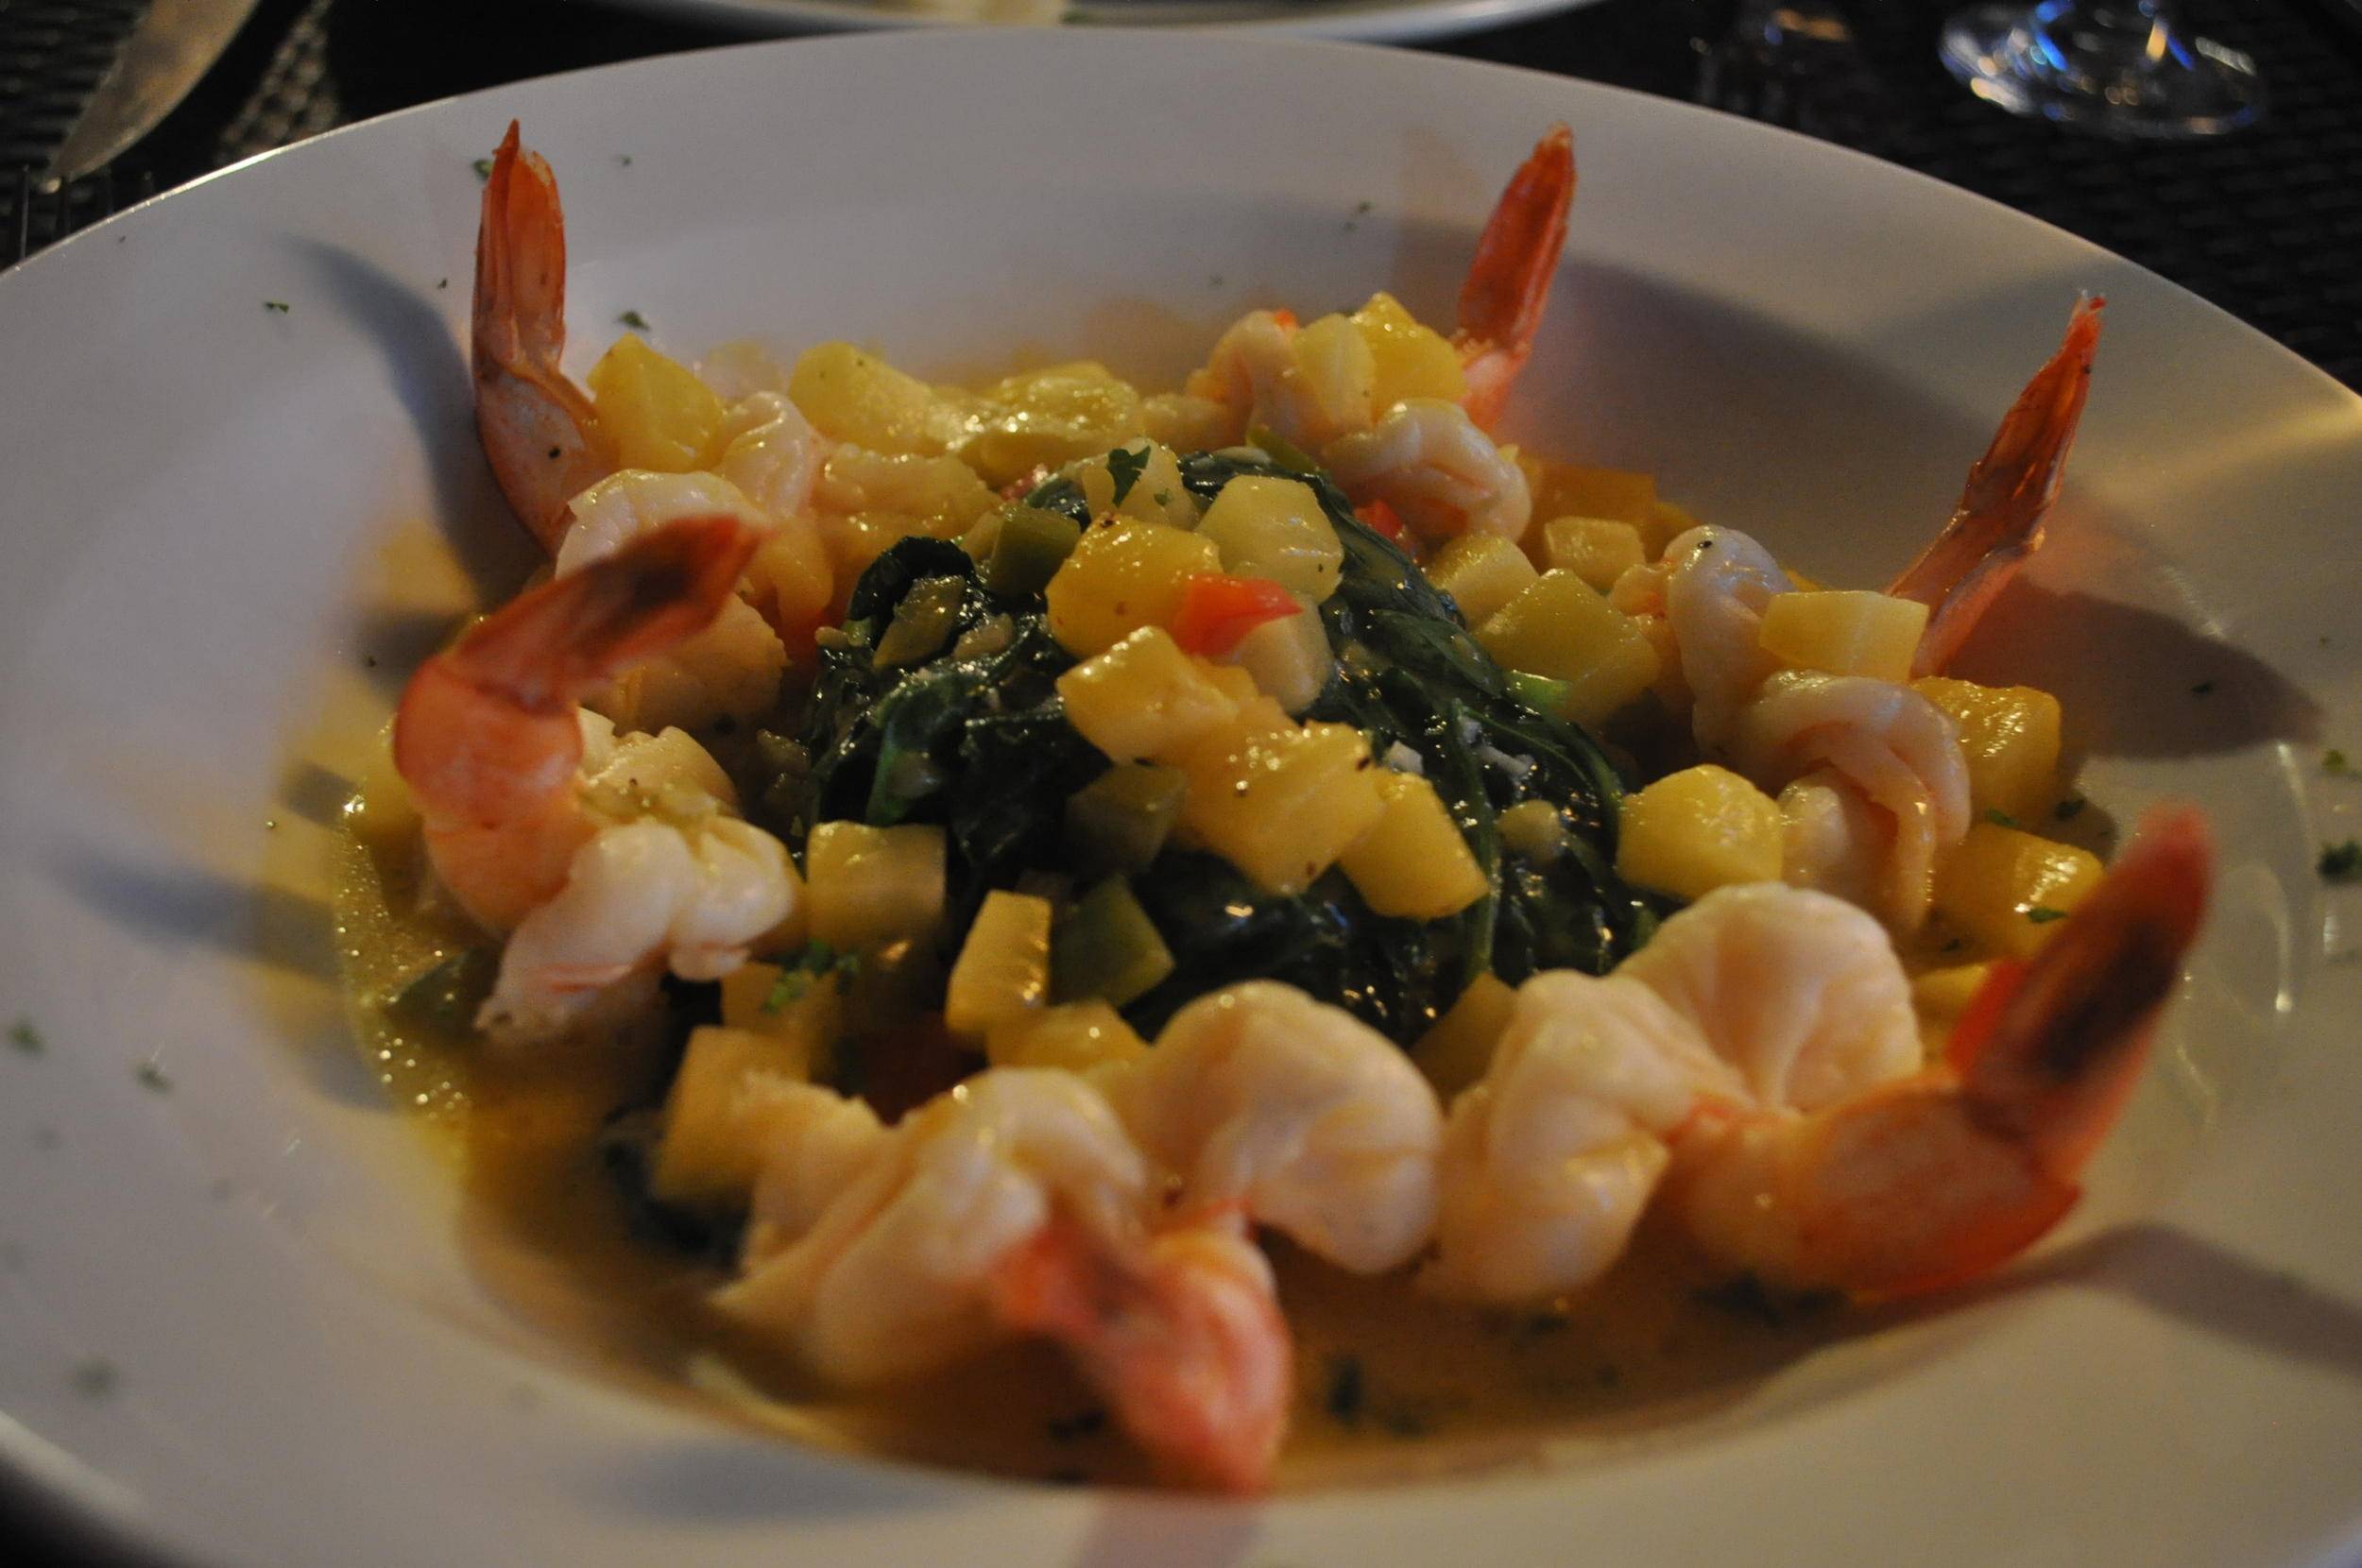 After the fire fades, diners are left with Morales's tasty orange tequila shrimp.